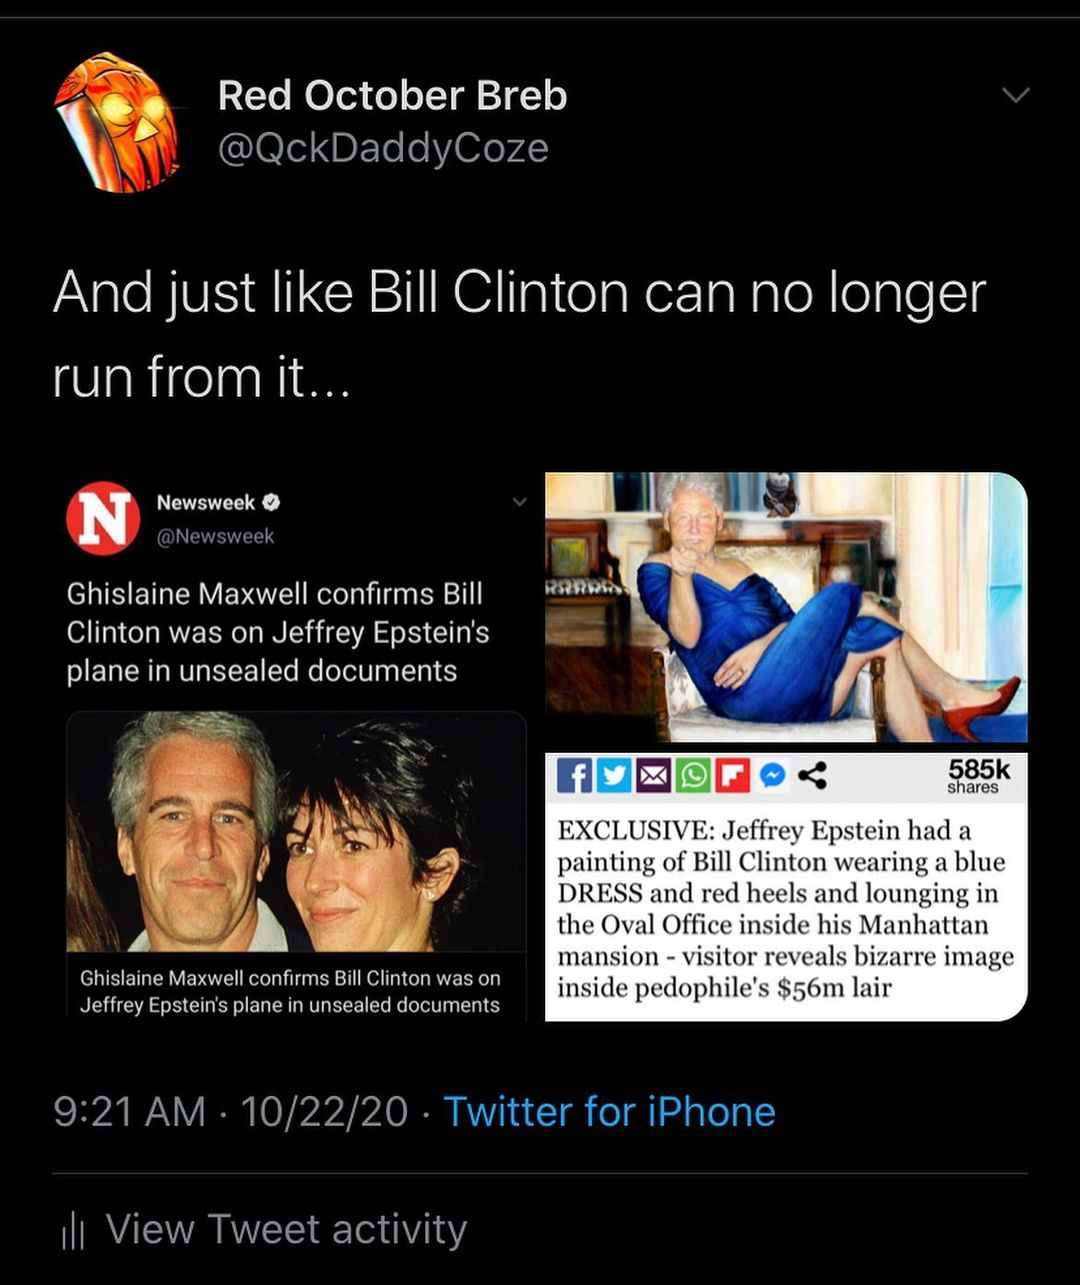 Ghislaine Maxwell confirms Bill Clinton was on Jeffrey Epstein's plane in unsealed documents